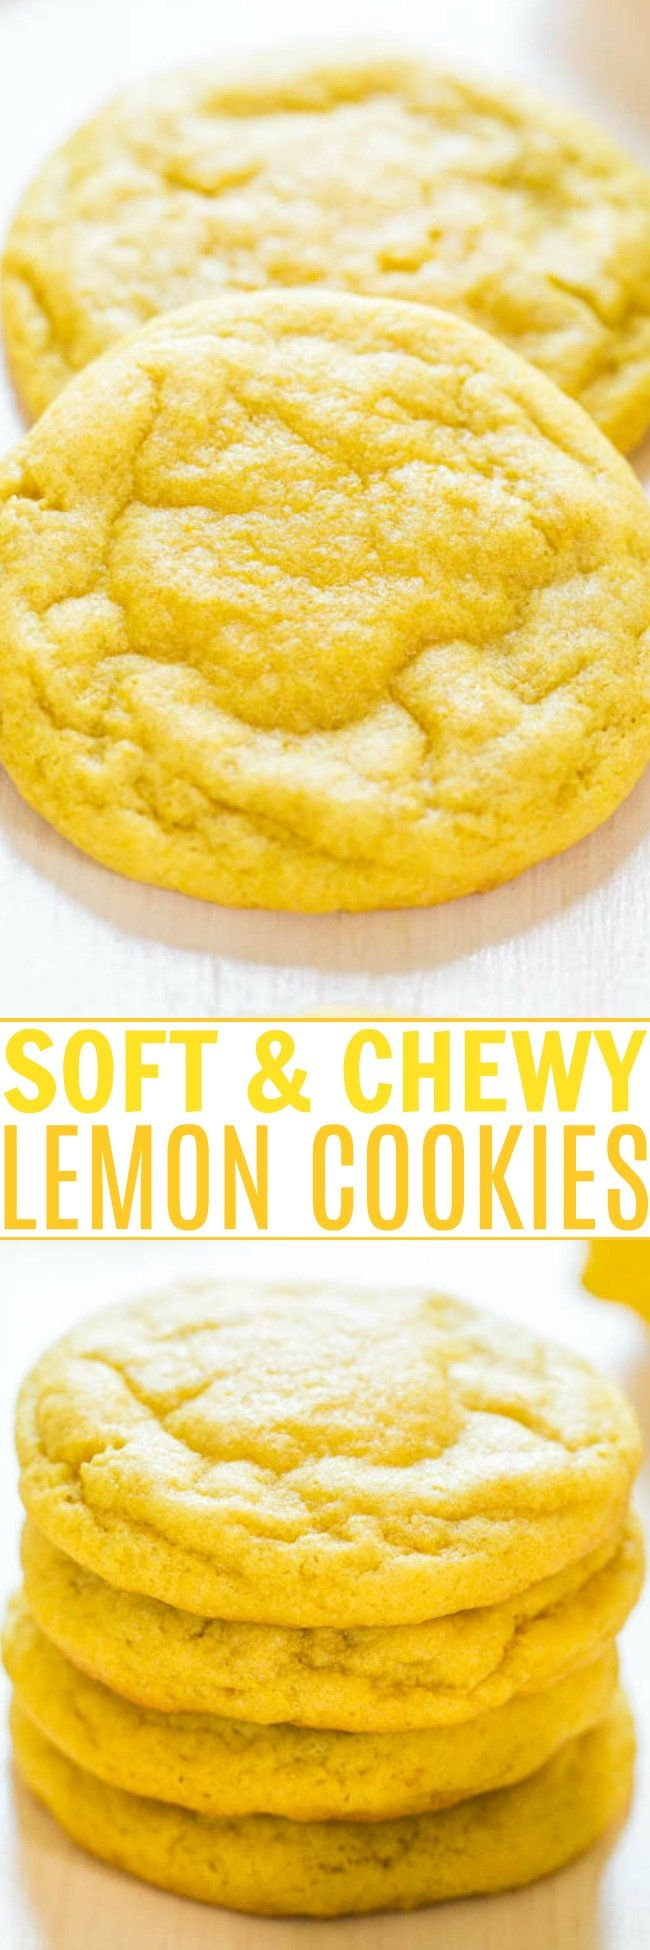 Soft and Chewy Lemon Cookies — Packed with big, bold lemon flavor for all you lemon lovers! They're soft, chewy and not at all cakey!